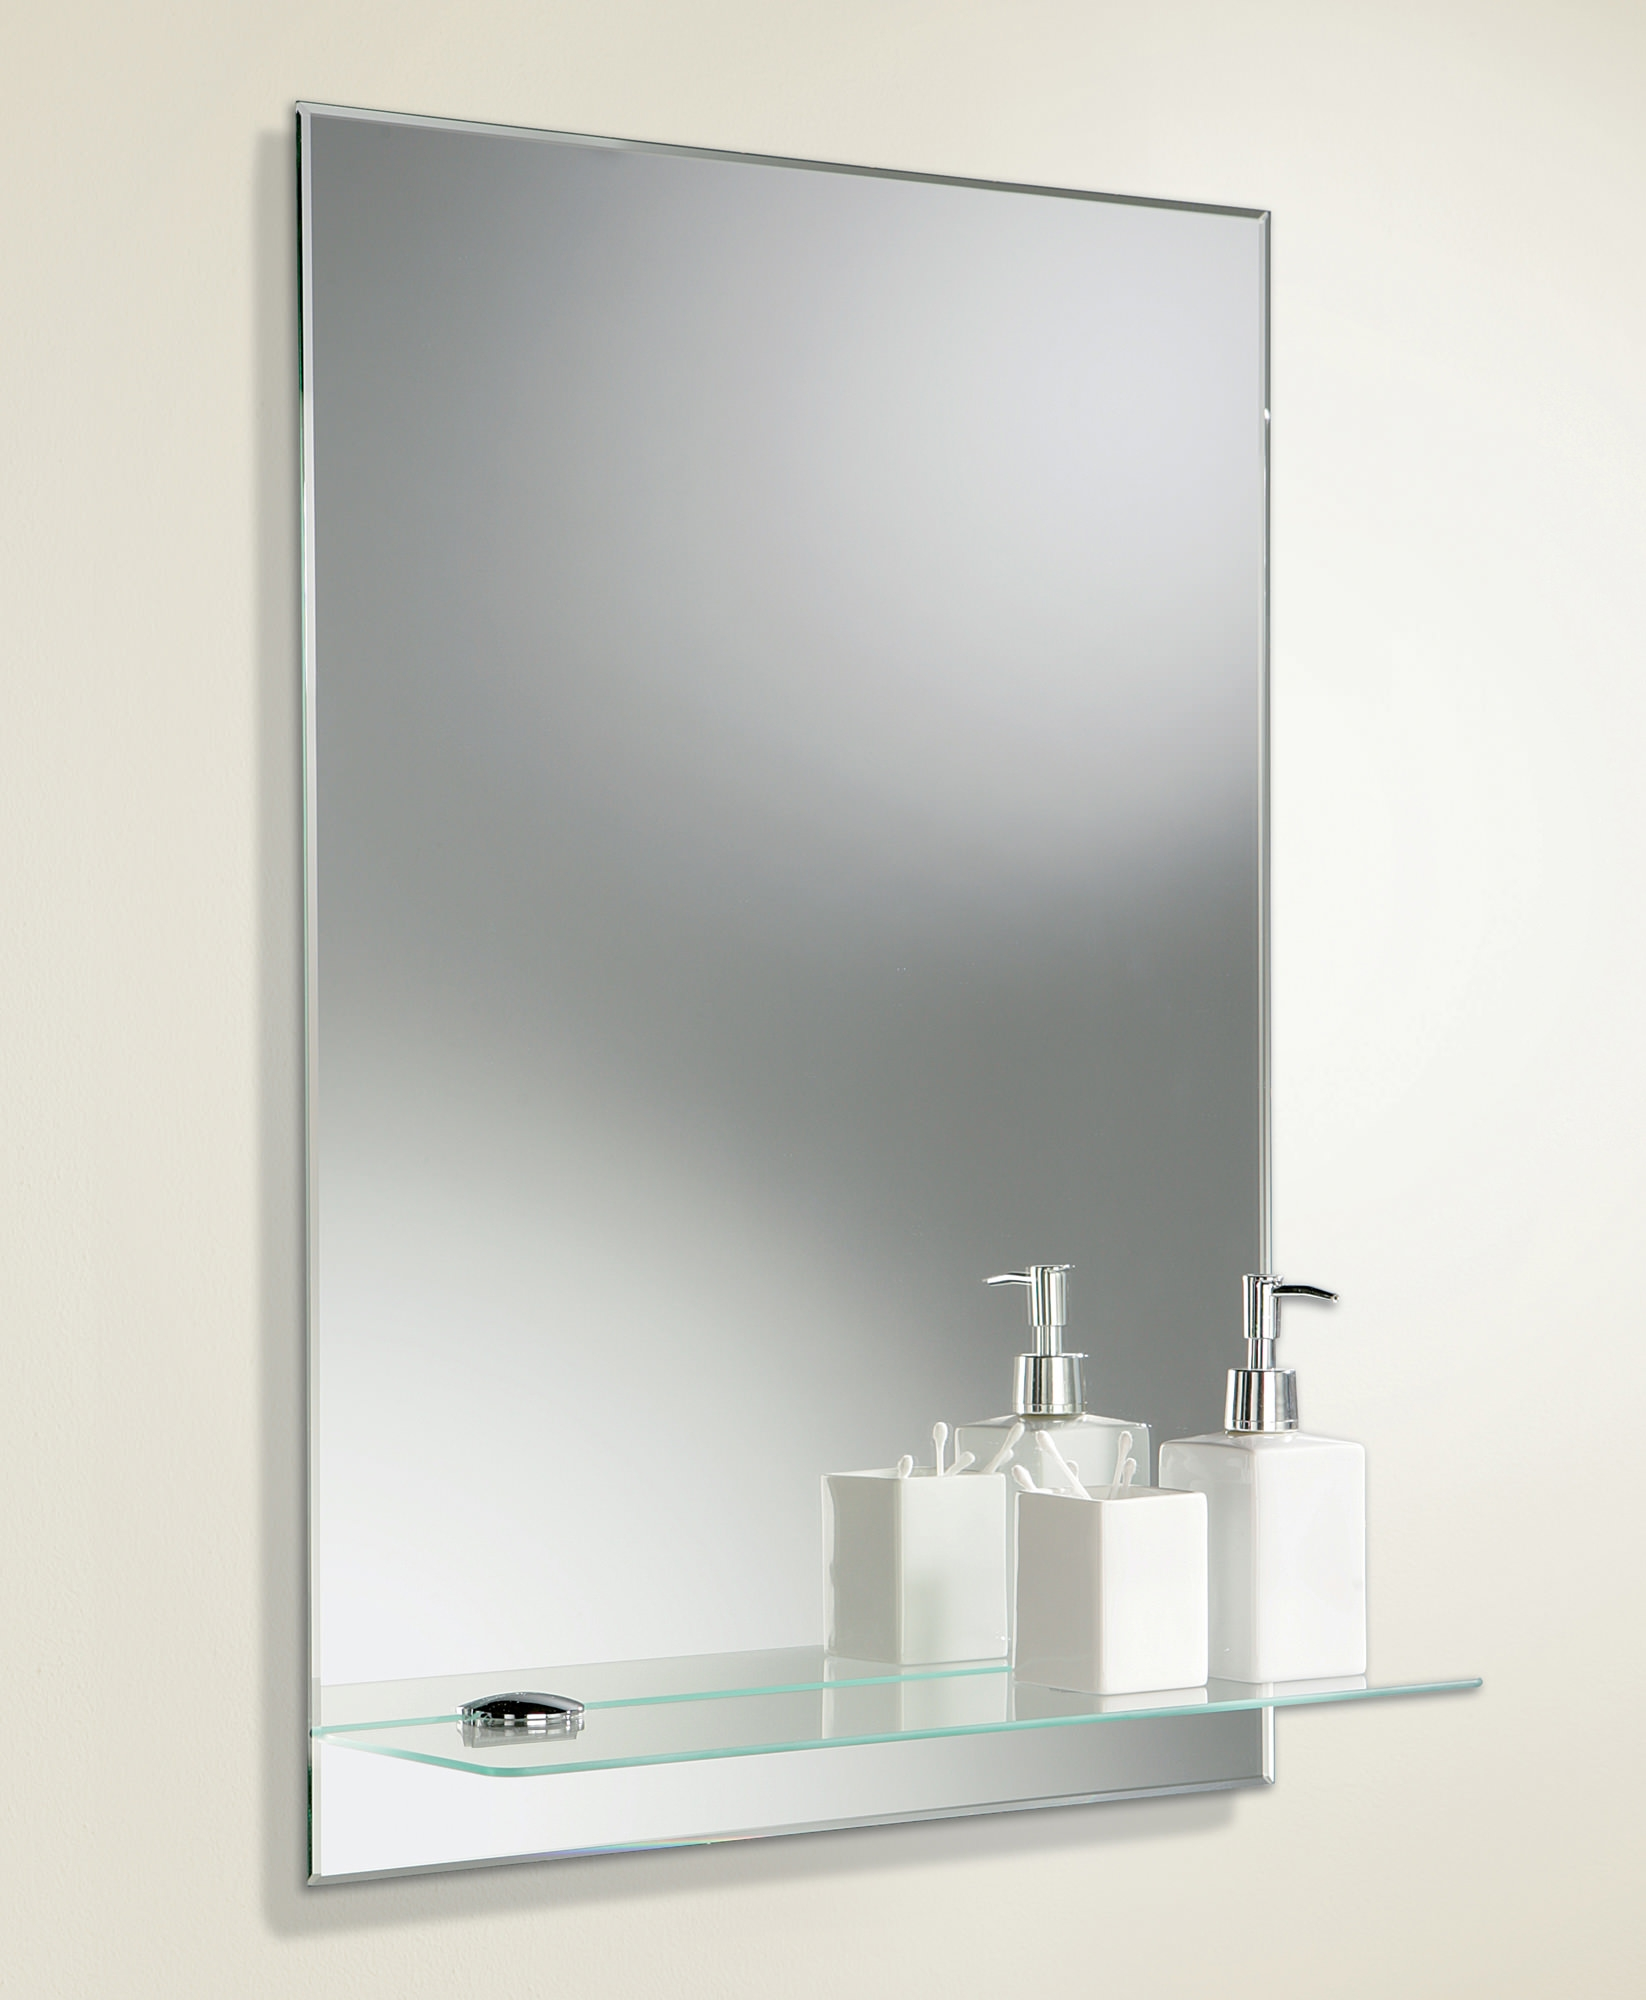 Hib Del Rectangular Bevelled Edge Mirror With Glass Shelf 72026000 With Regard To Bevelled Edge Mirrors (View 2 of 15)